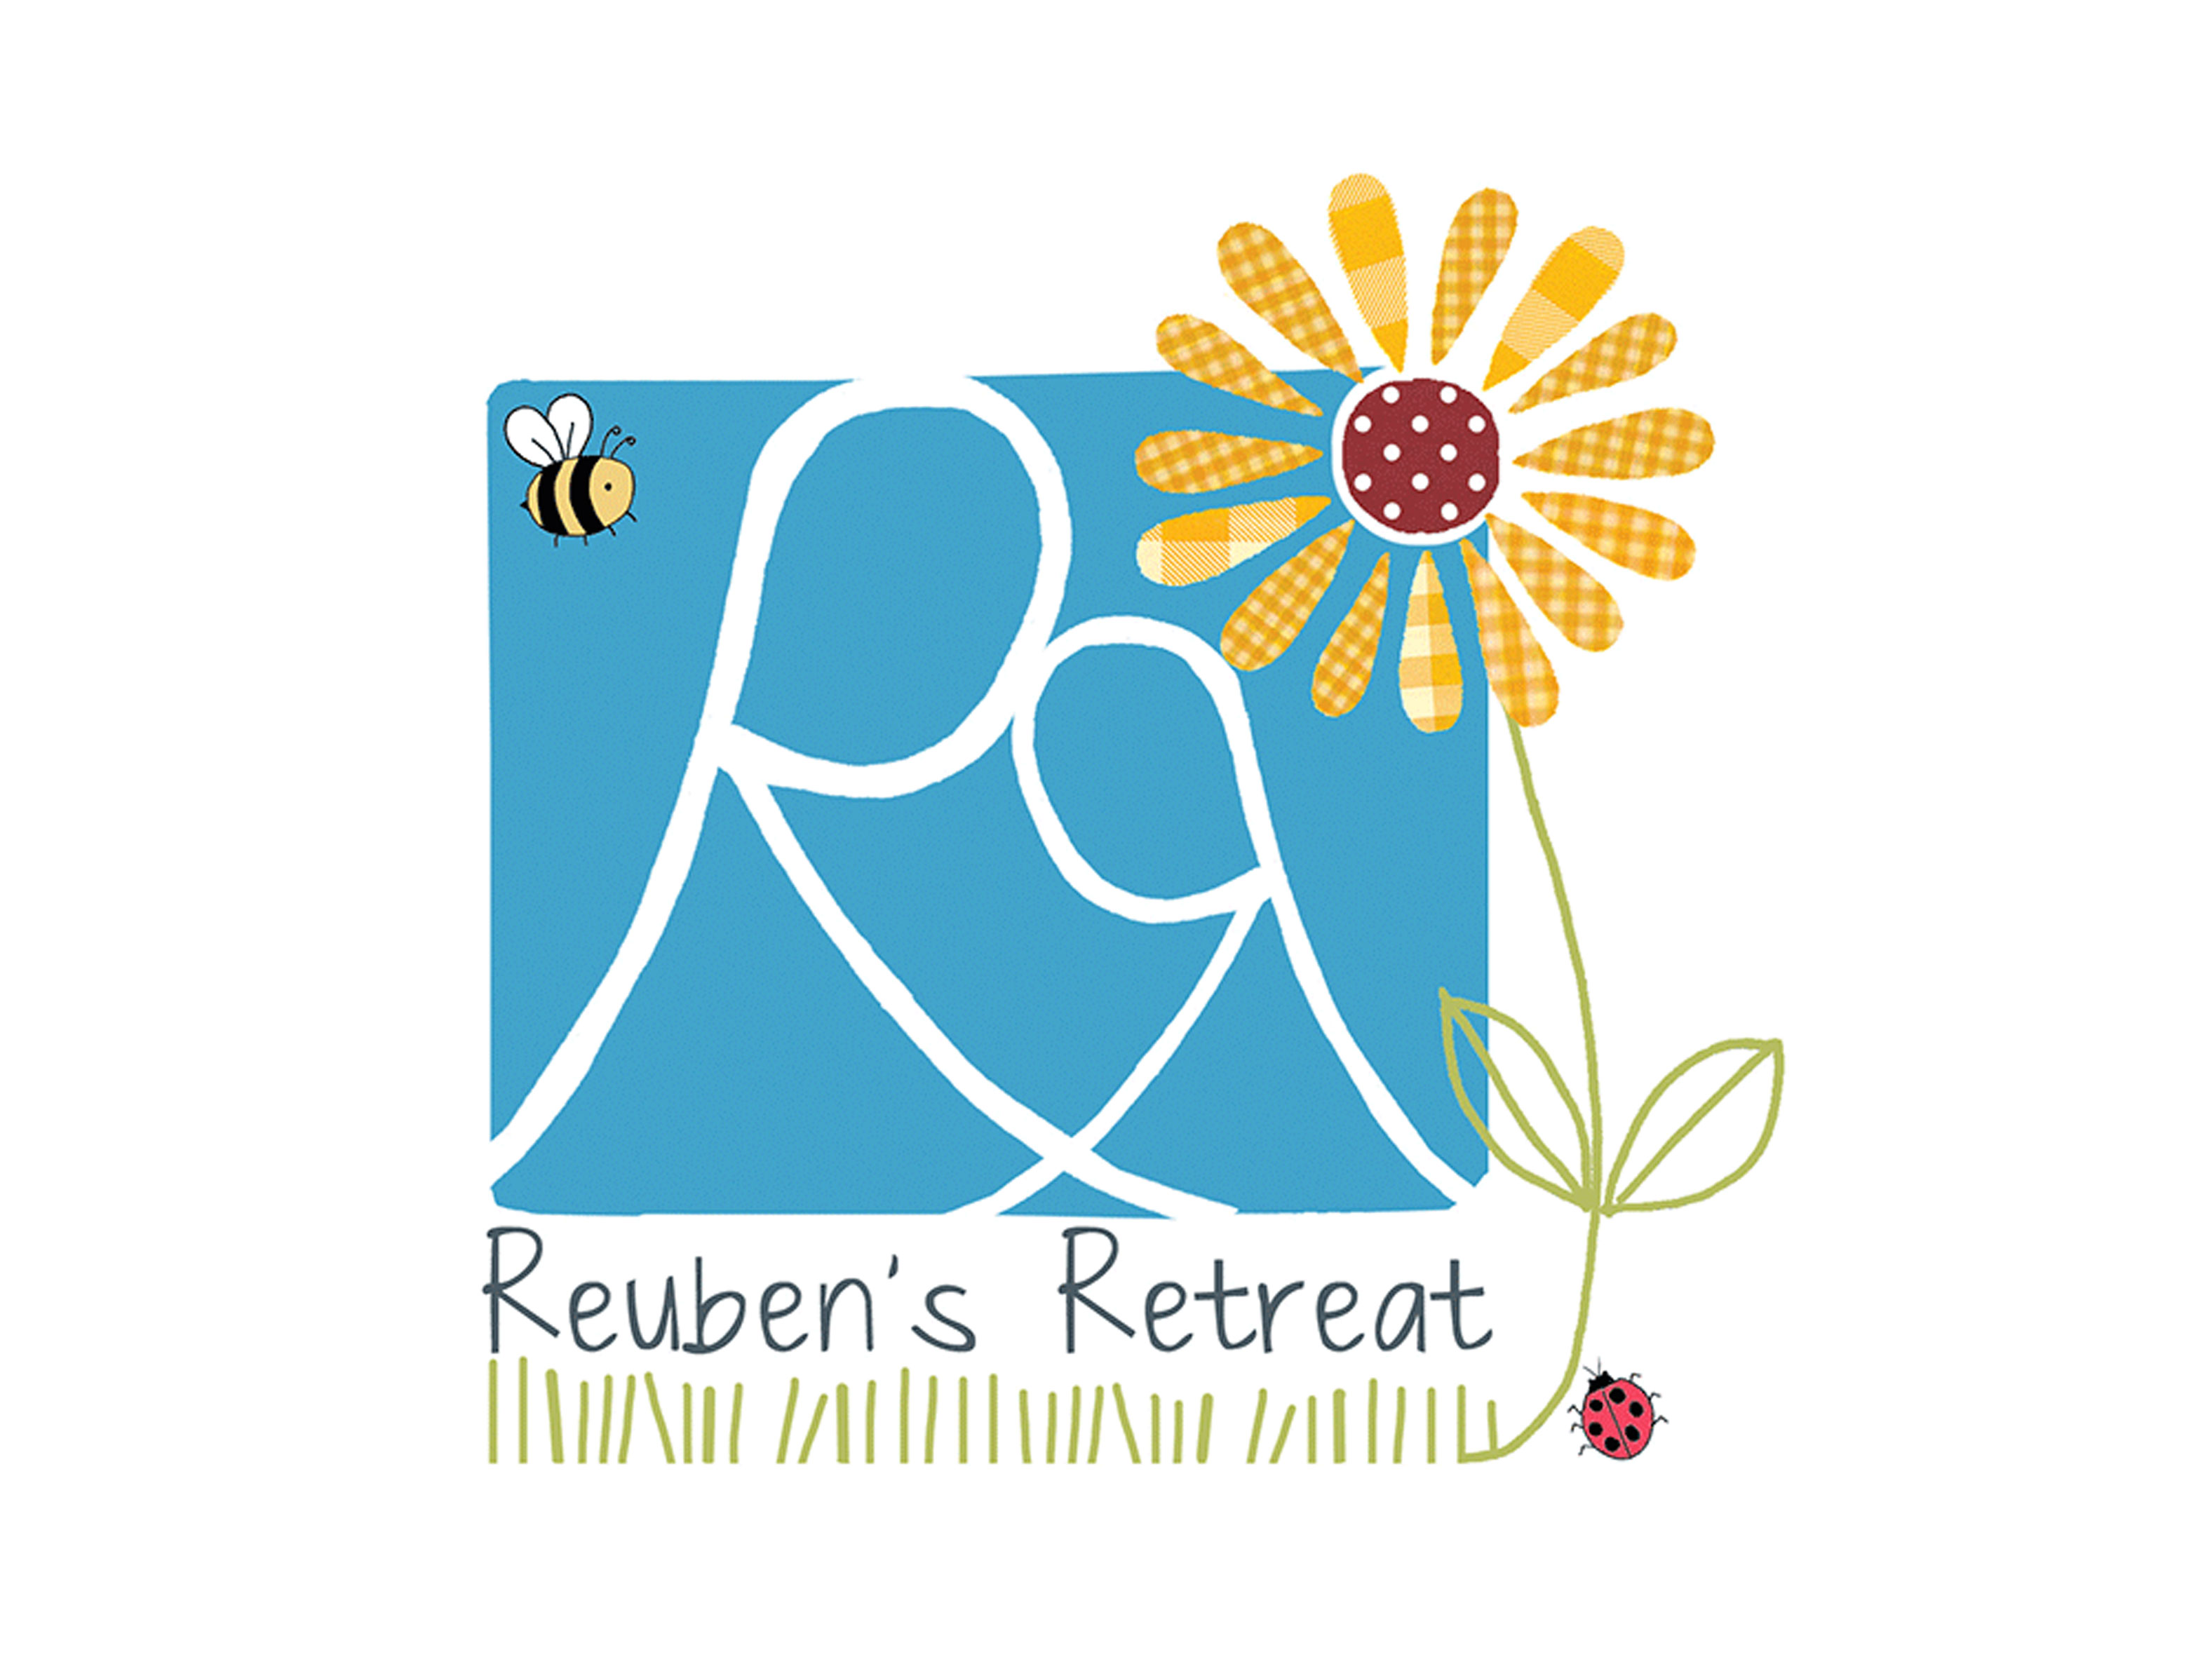 Charity Reubens retreat